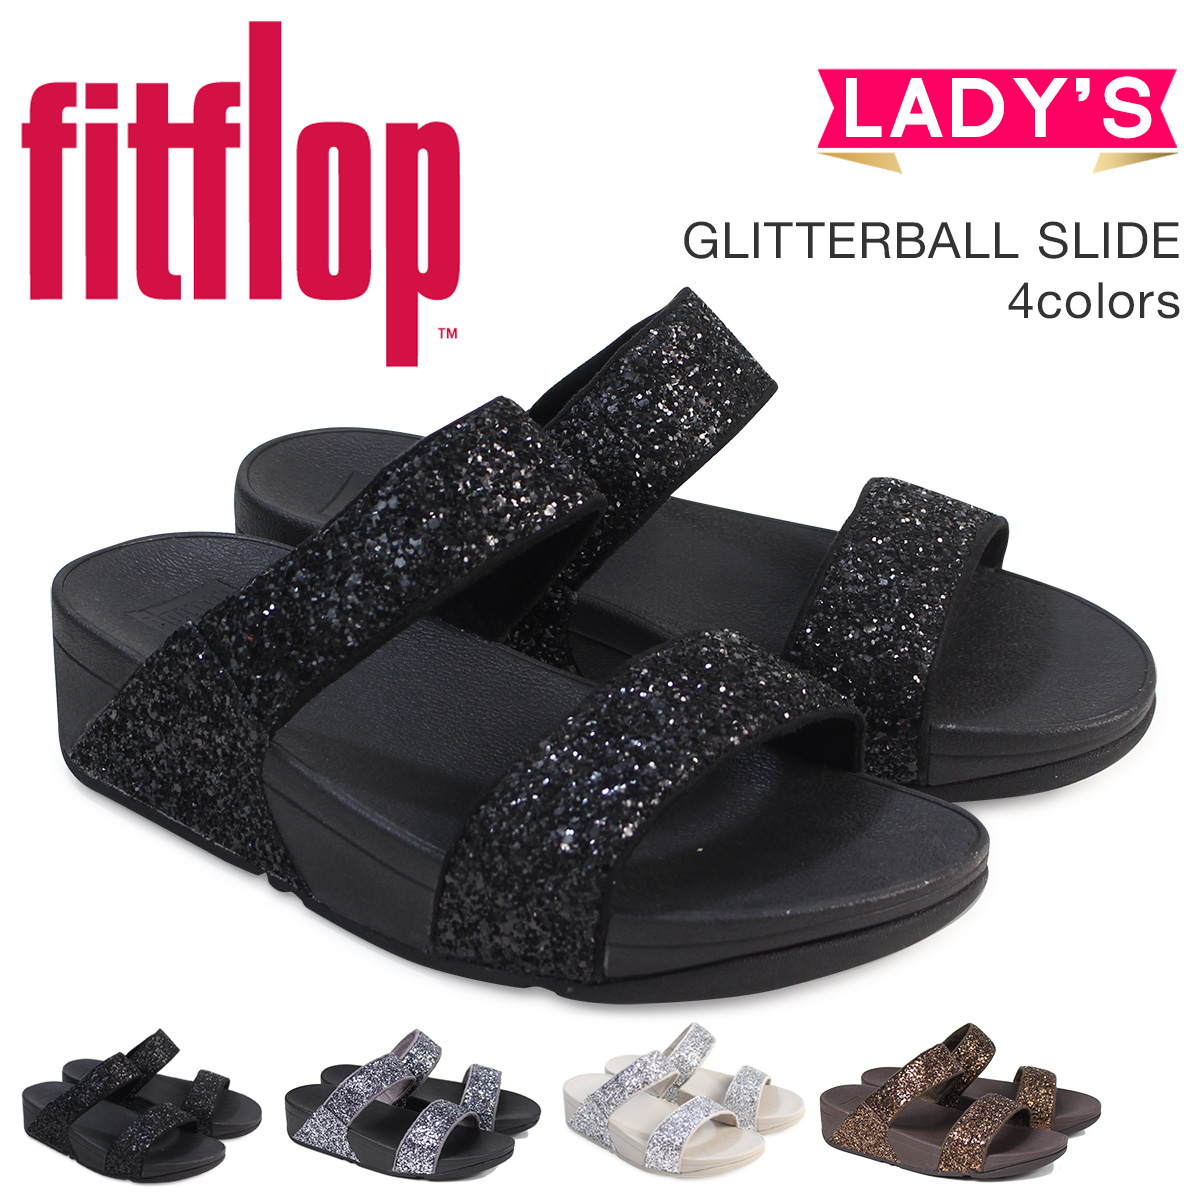 90d3a9c3e60 FitFlop sandals fitting FLOP glitter slide GLITTERBALL SLIDE H24 Lady s   4 4 Shinnyu load